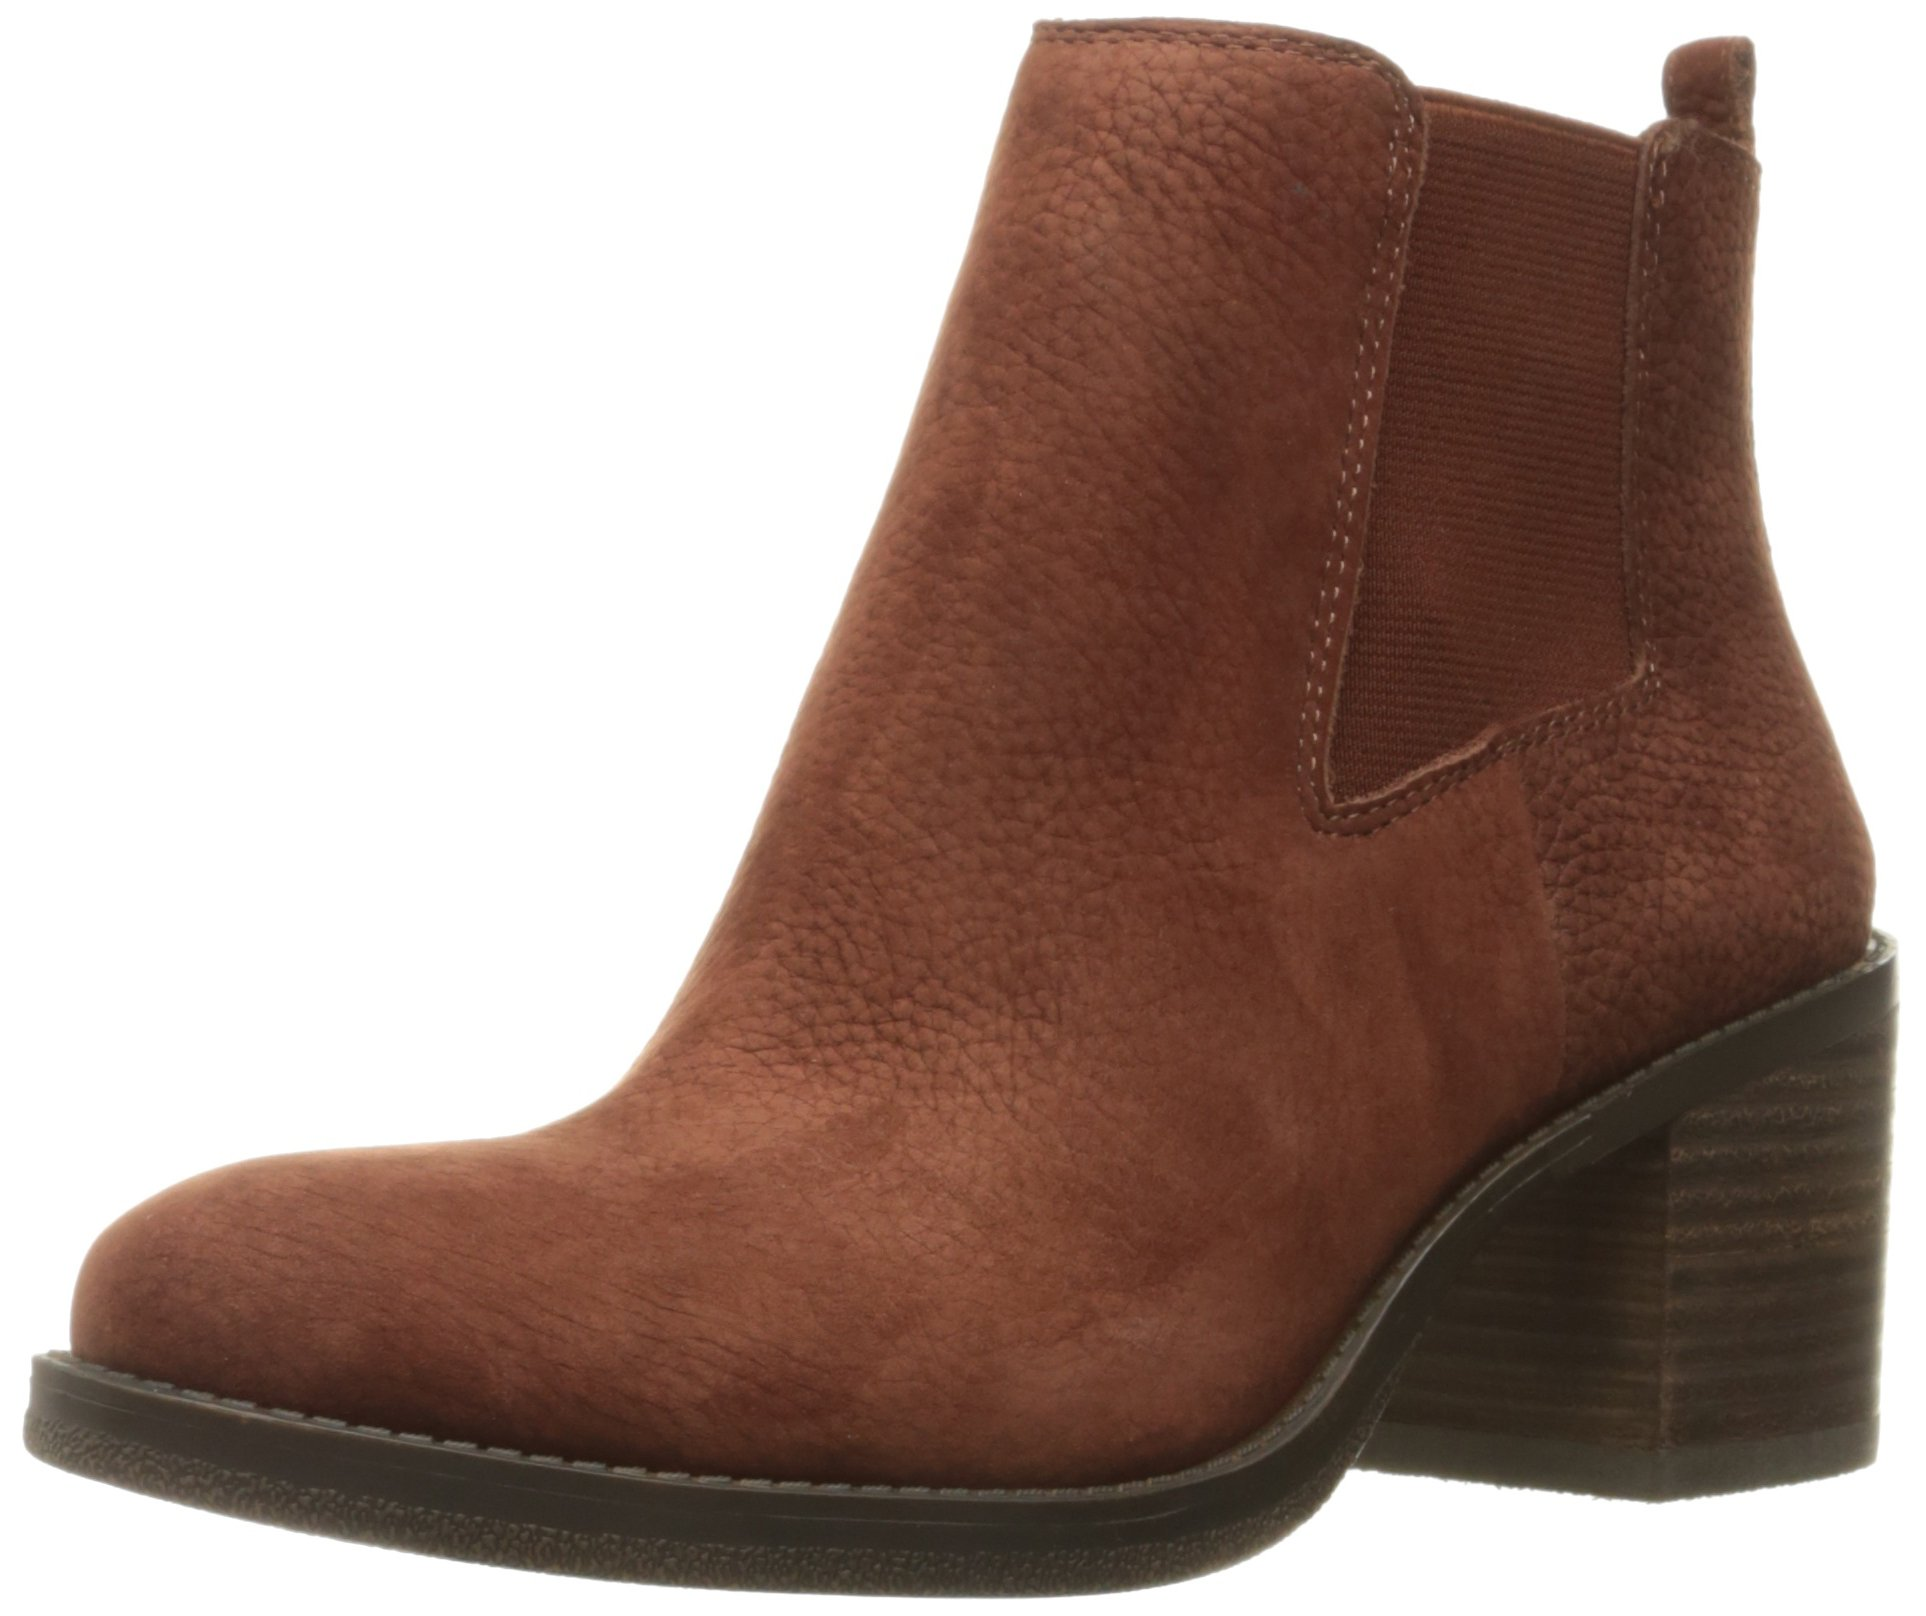 Lucky Brand Women's Ralley Ankle Bootie, Russet, 8 M US